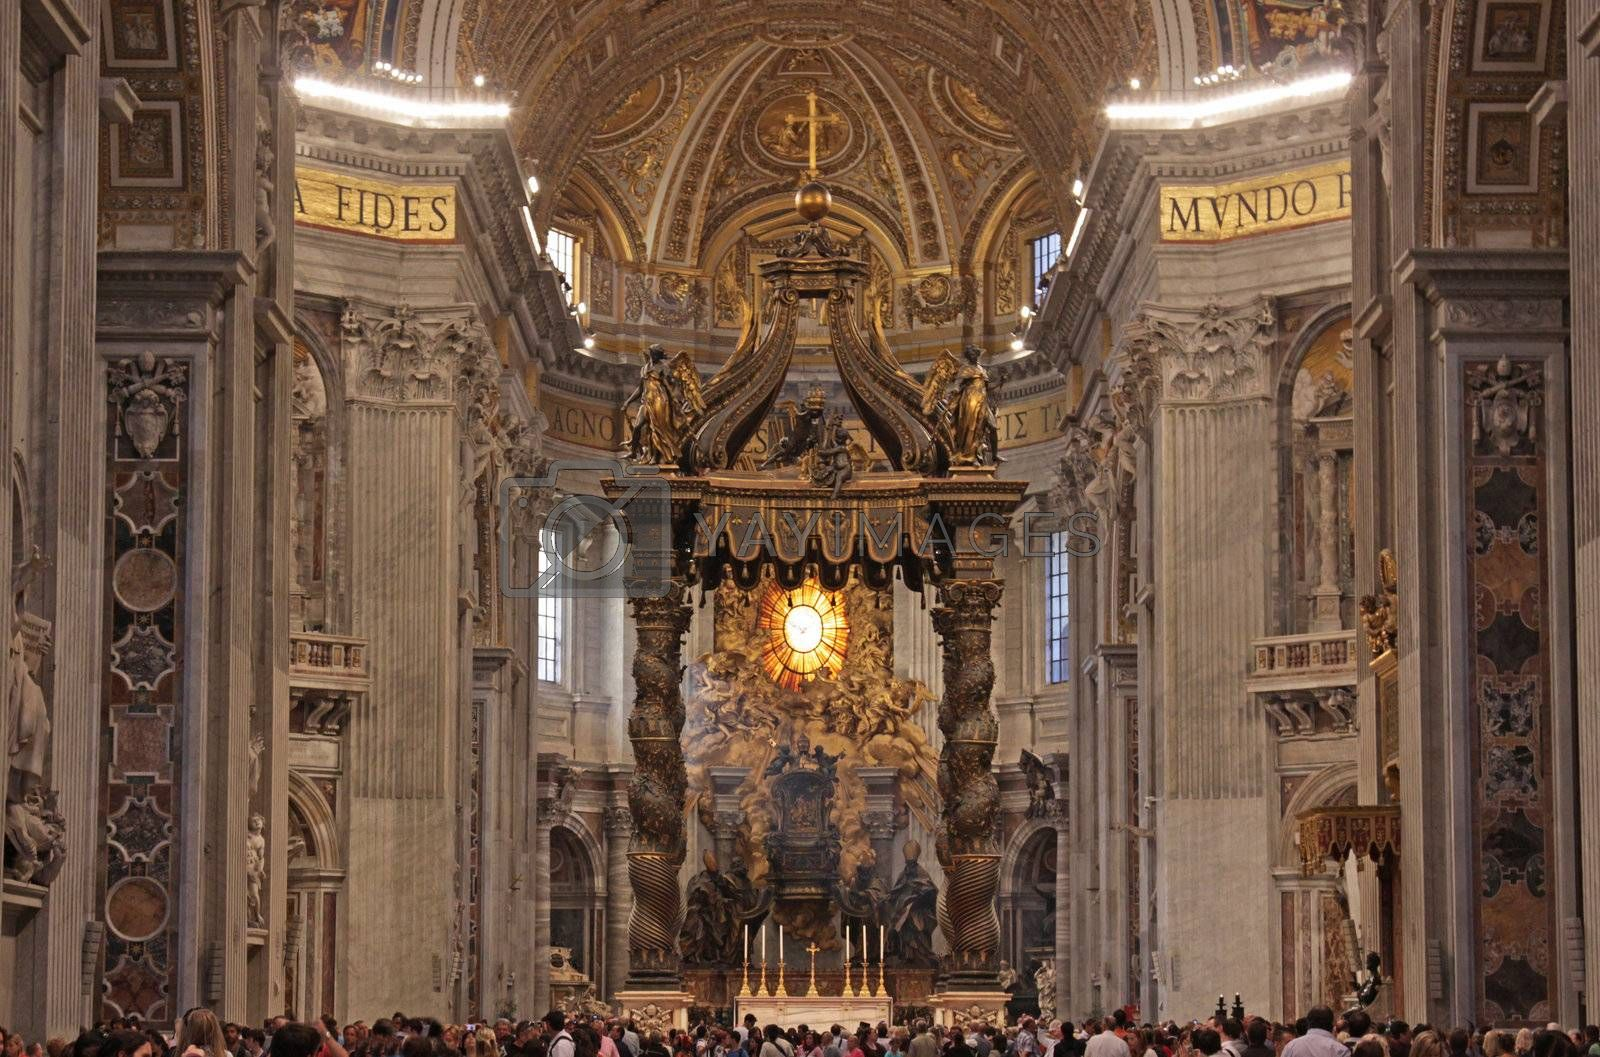 A wide angle shot of the main altar of St. Peter's Basilica, in Rome, Italy.